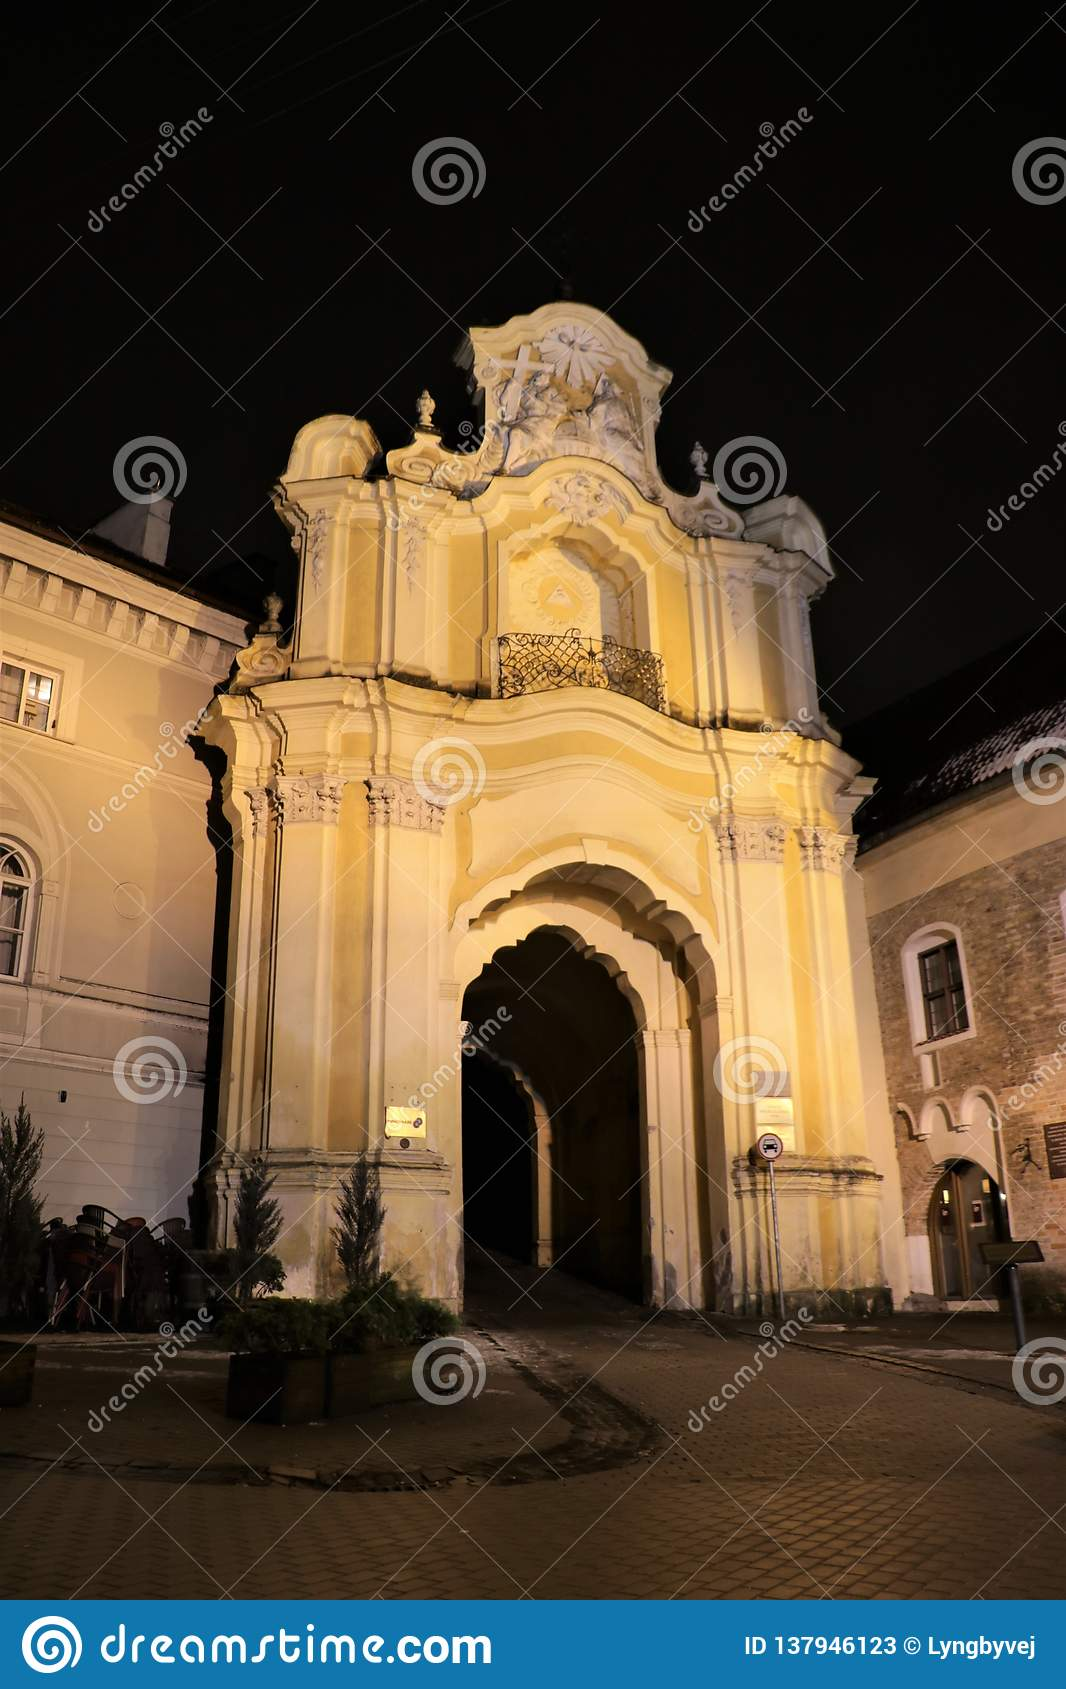 f86e2f857f Historic Basilian Monastery Gate in the Old Town of Vilnius, the capital of  Lithuania. More similar stock images